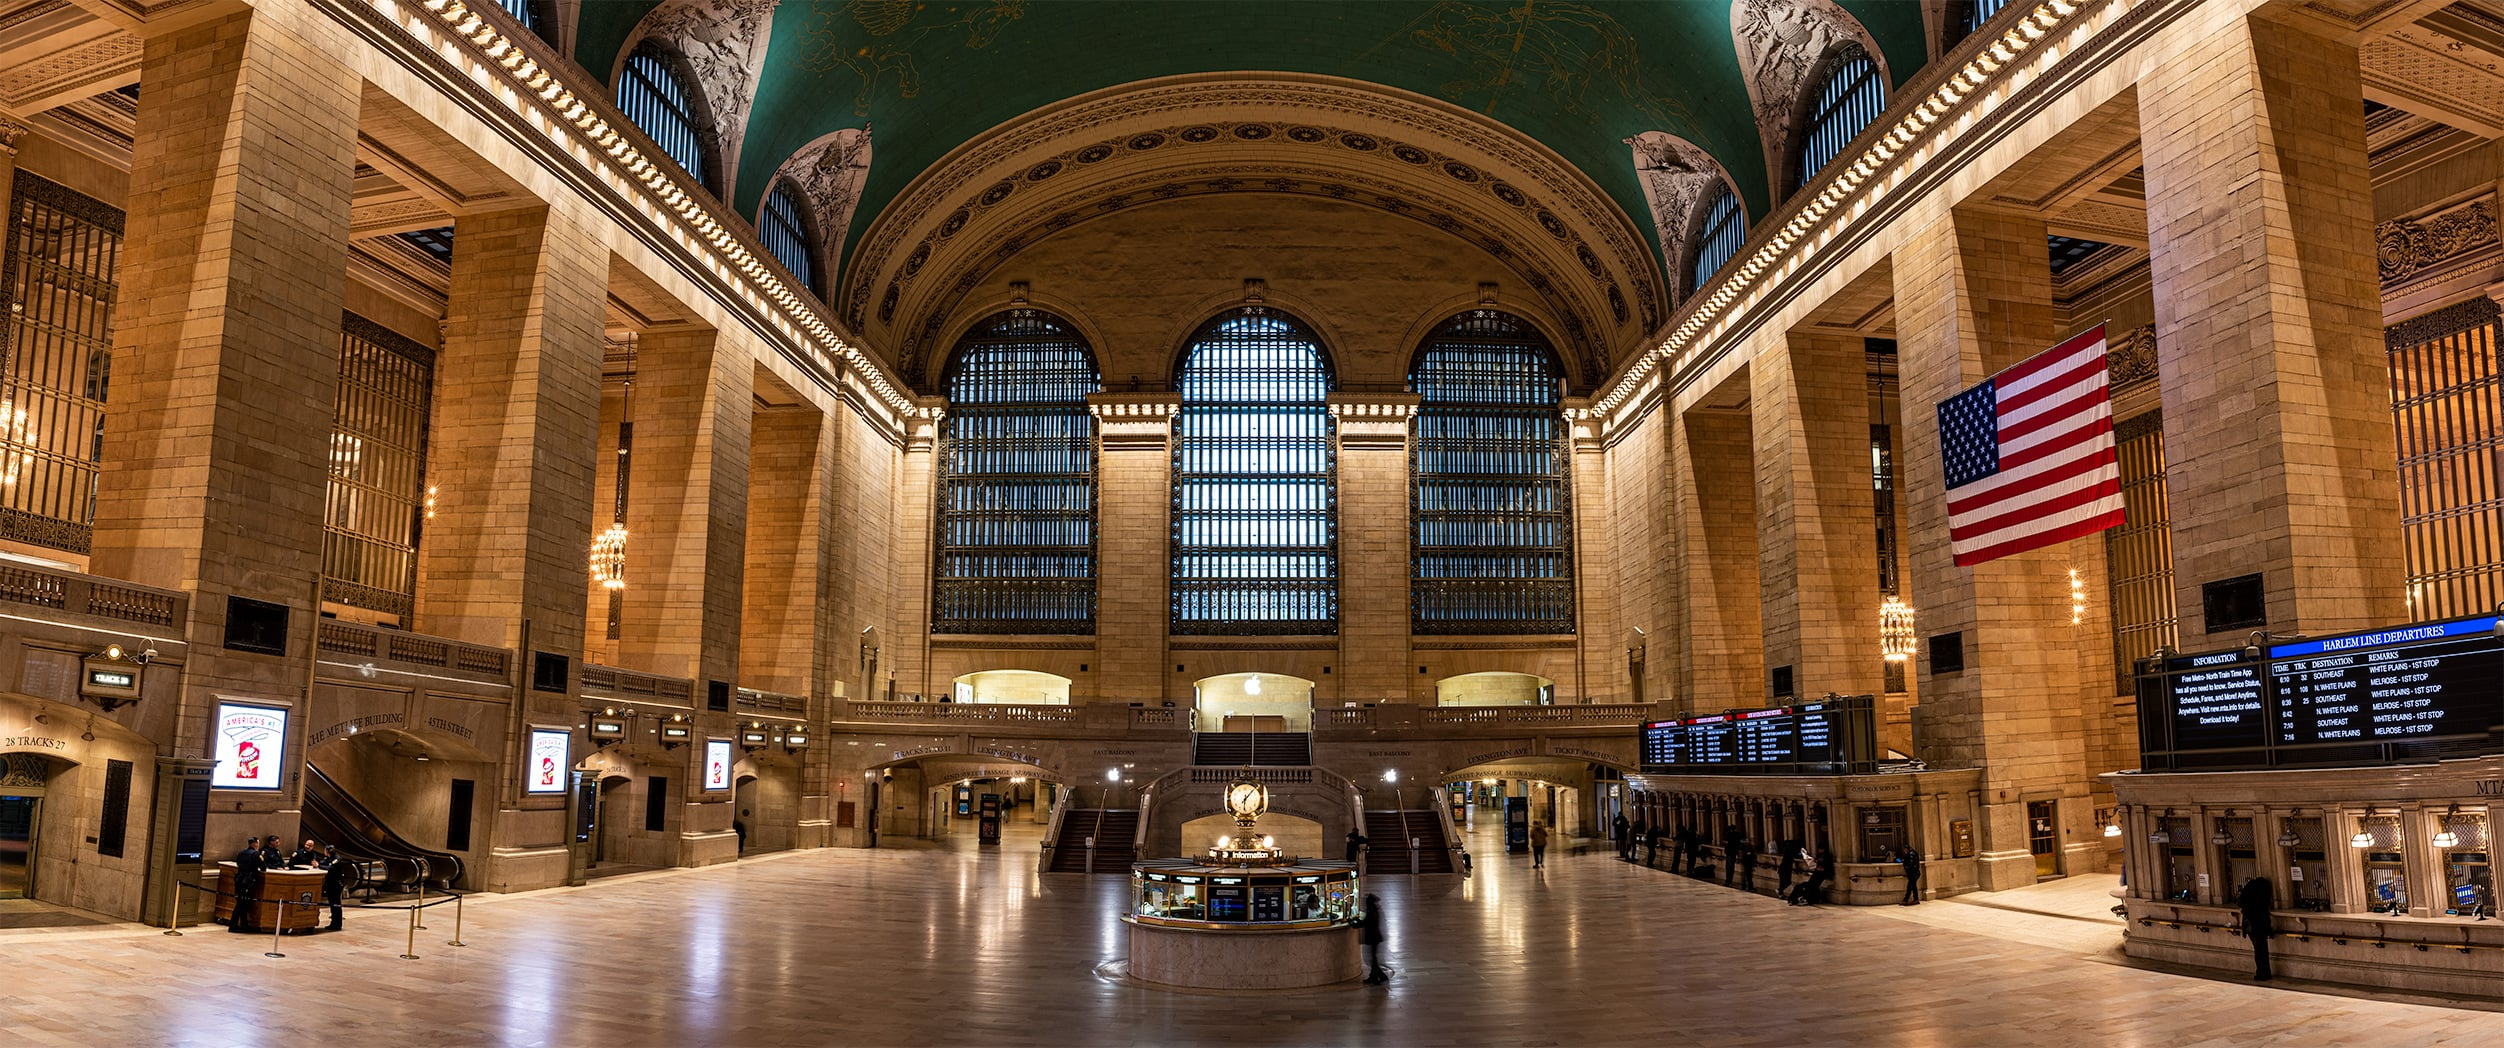 Empty Grand Central Station